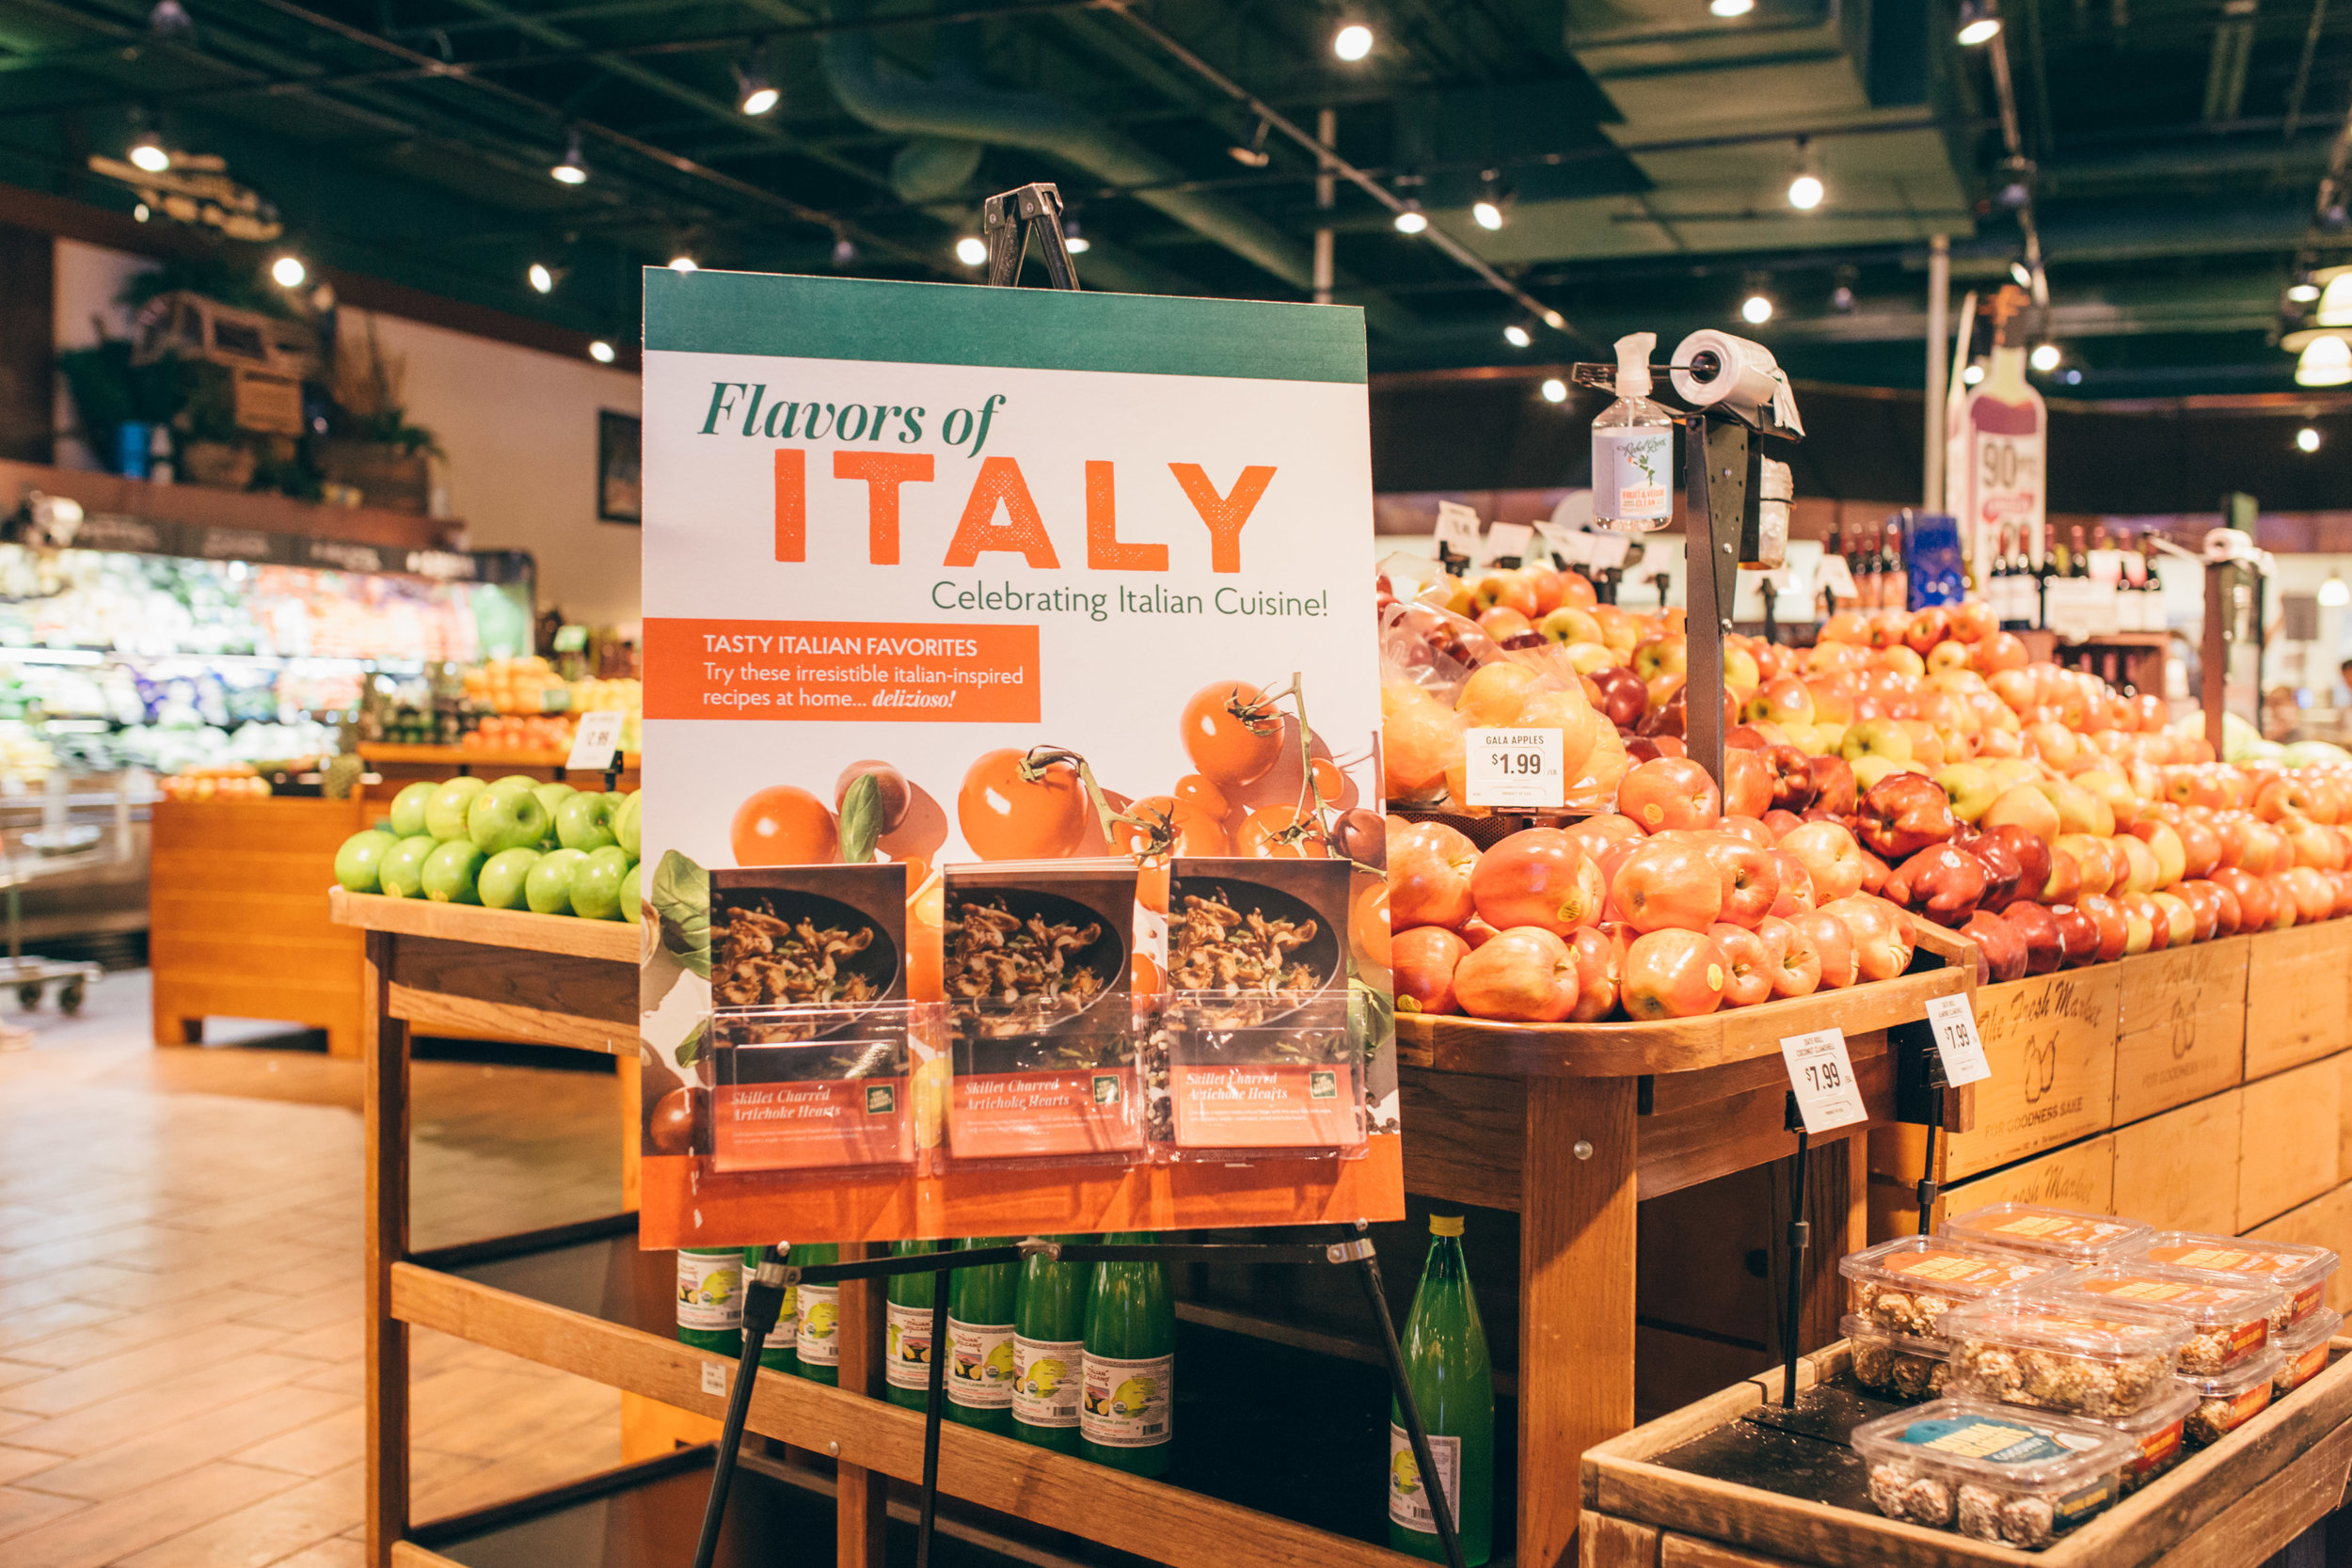 The Fresh Market - Flavors of Italy 2